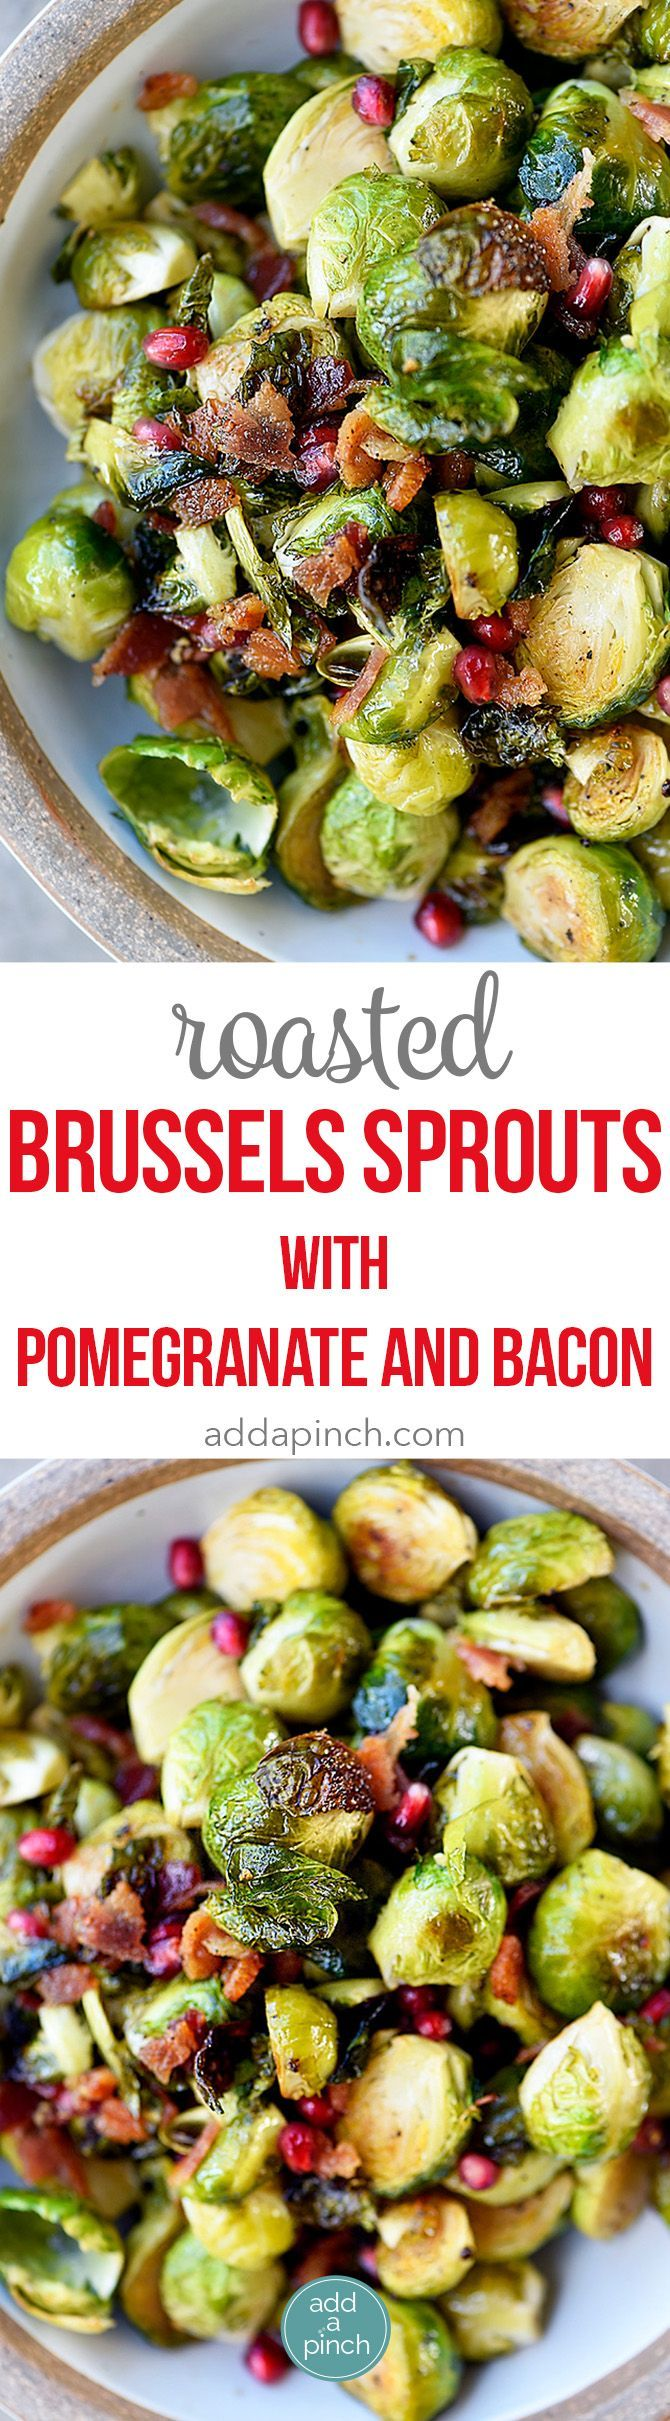 Roasted Brussels Sprouts with Pomegranate and Bacon Recipe - Roasted Brussels Sprouts with Pomegranate and Bacon make a delicious side dish! The brussels sprouts are roasted and then drizzled with maple syrup and balsamic vinegar and then tossed with crispy bacon and pomegranate! // http://addapinch.com